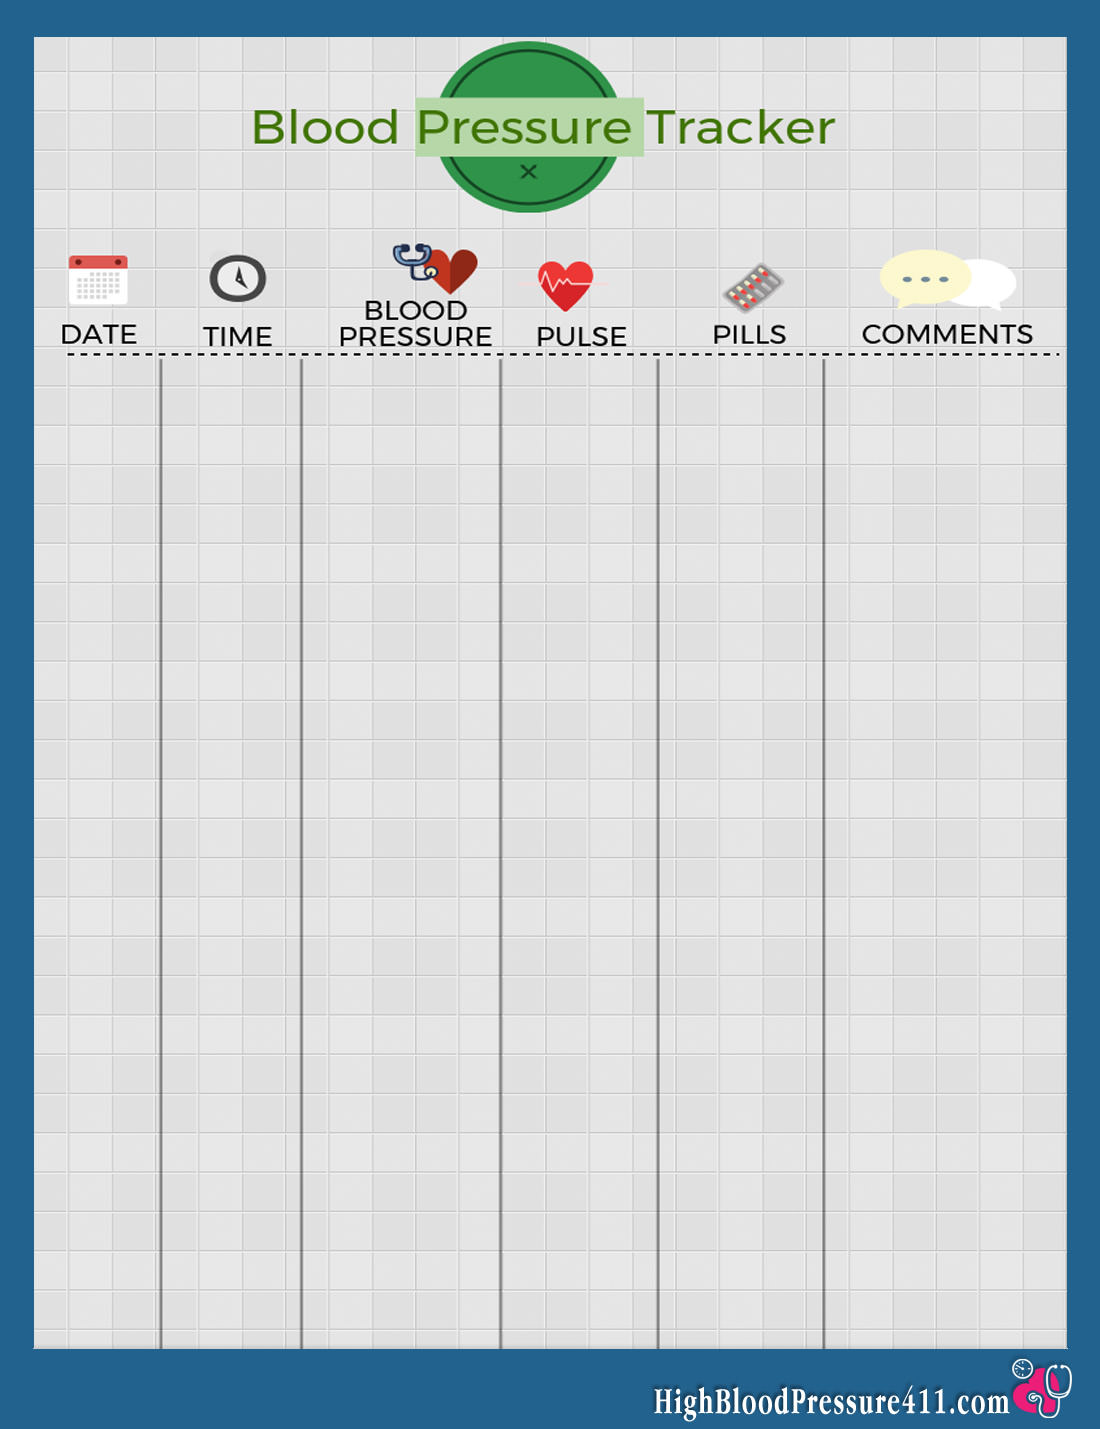 Blood Pressure Tracker Printable